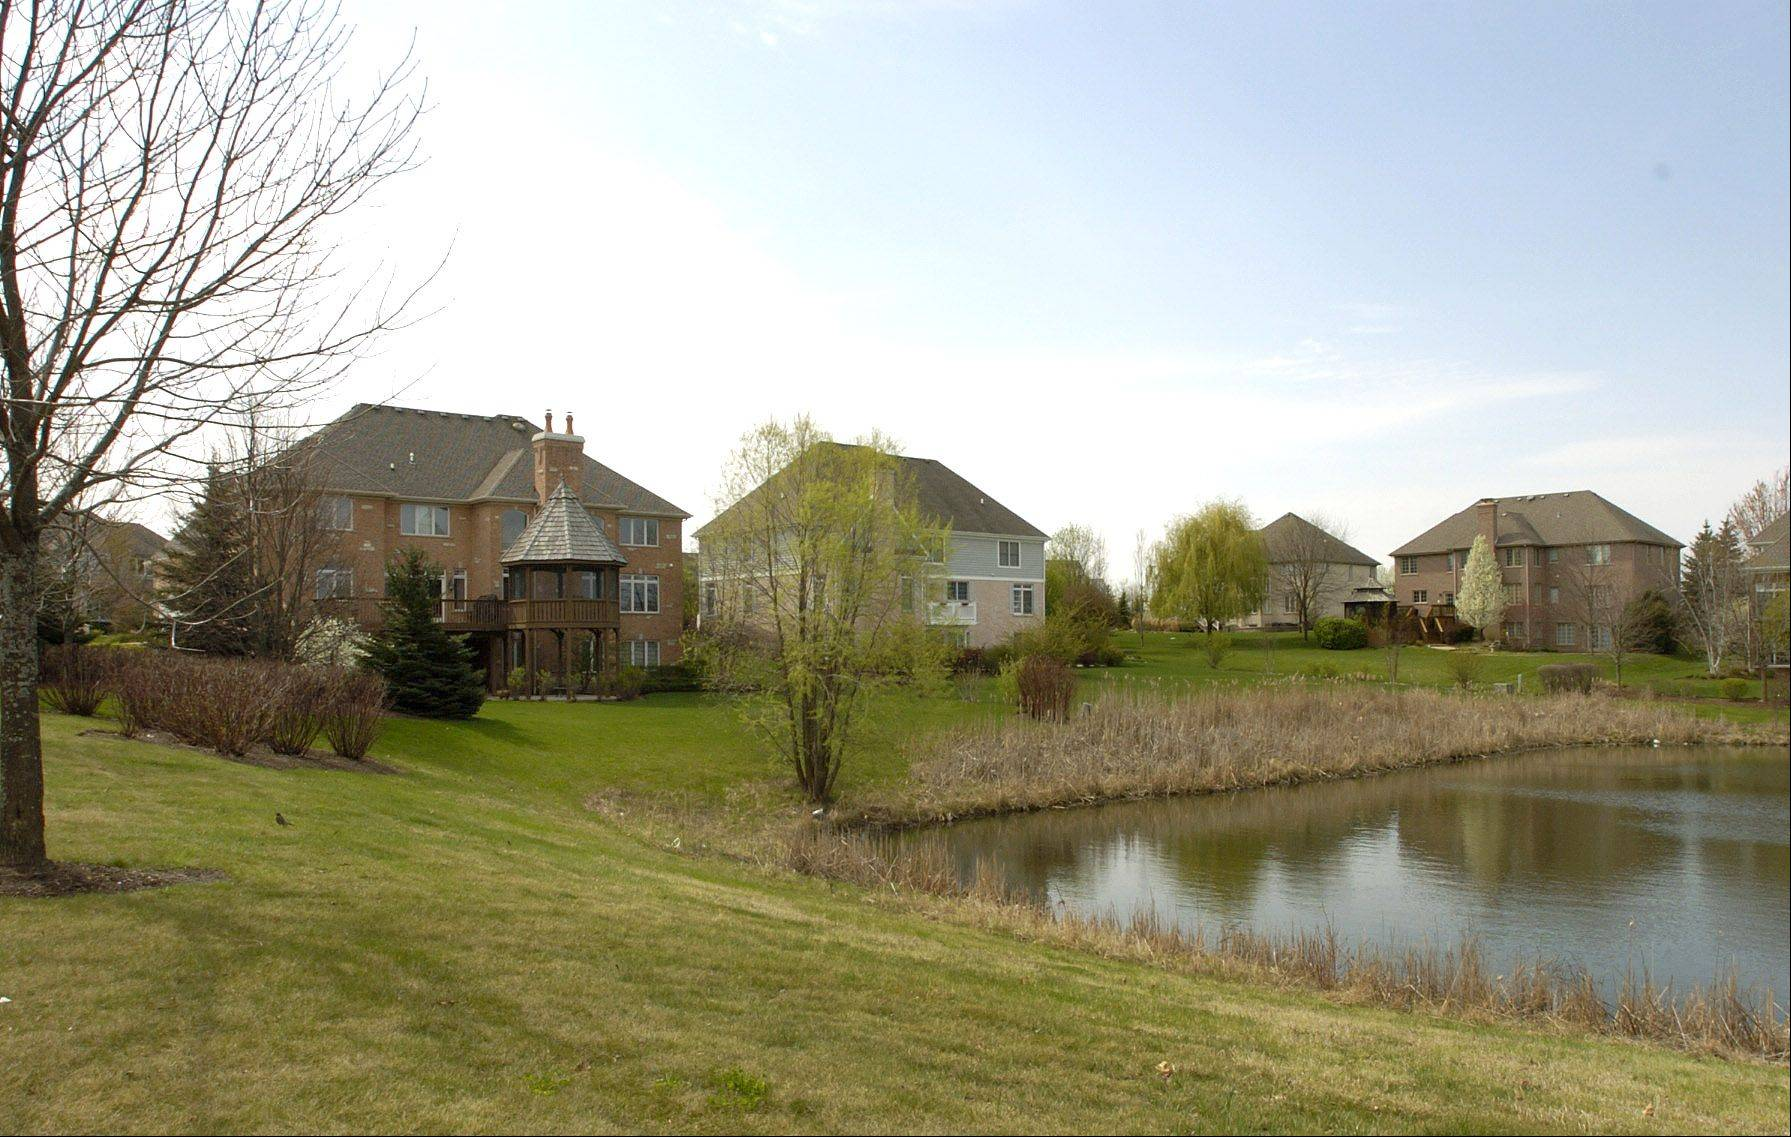 Many of the homes in The Ponds of Kildeer, including these along Meadowlark Drive, back up to ponds, woods or wetlands.